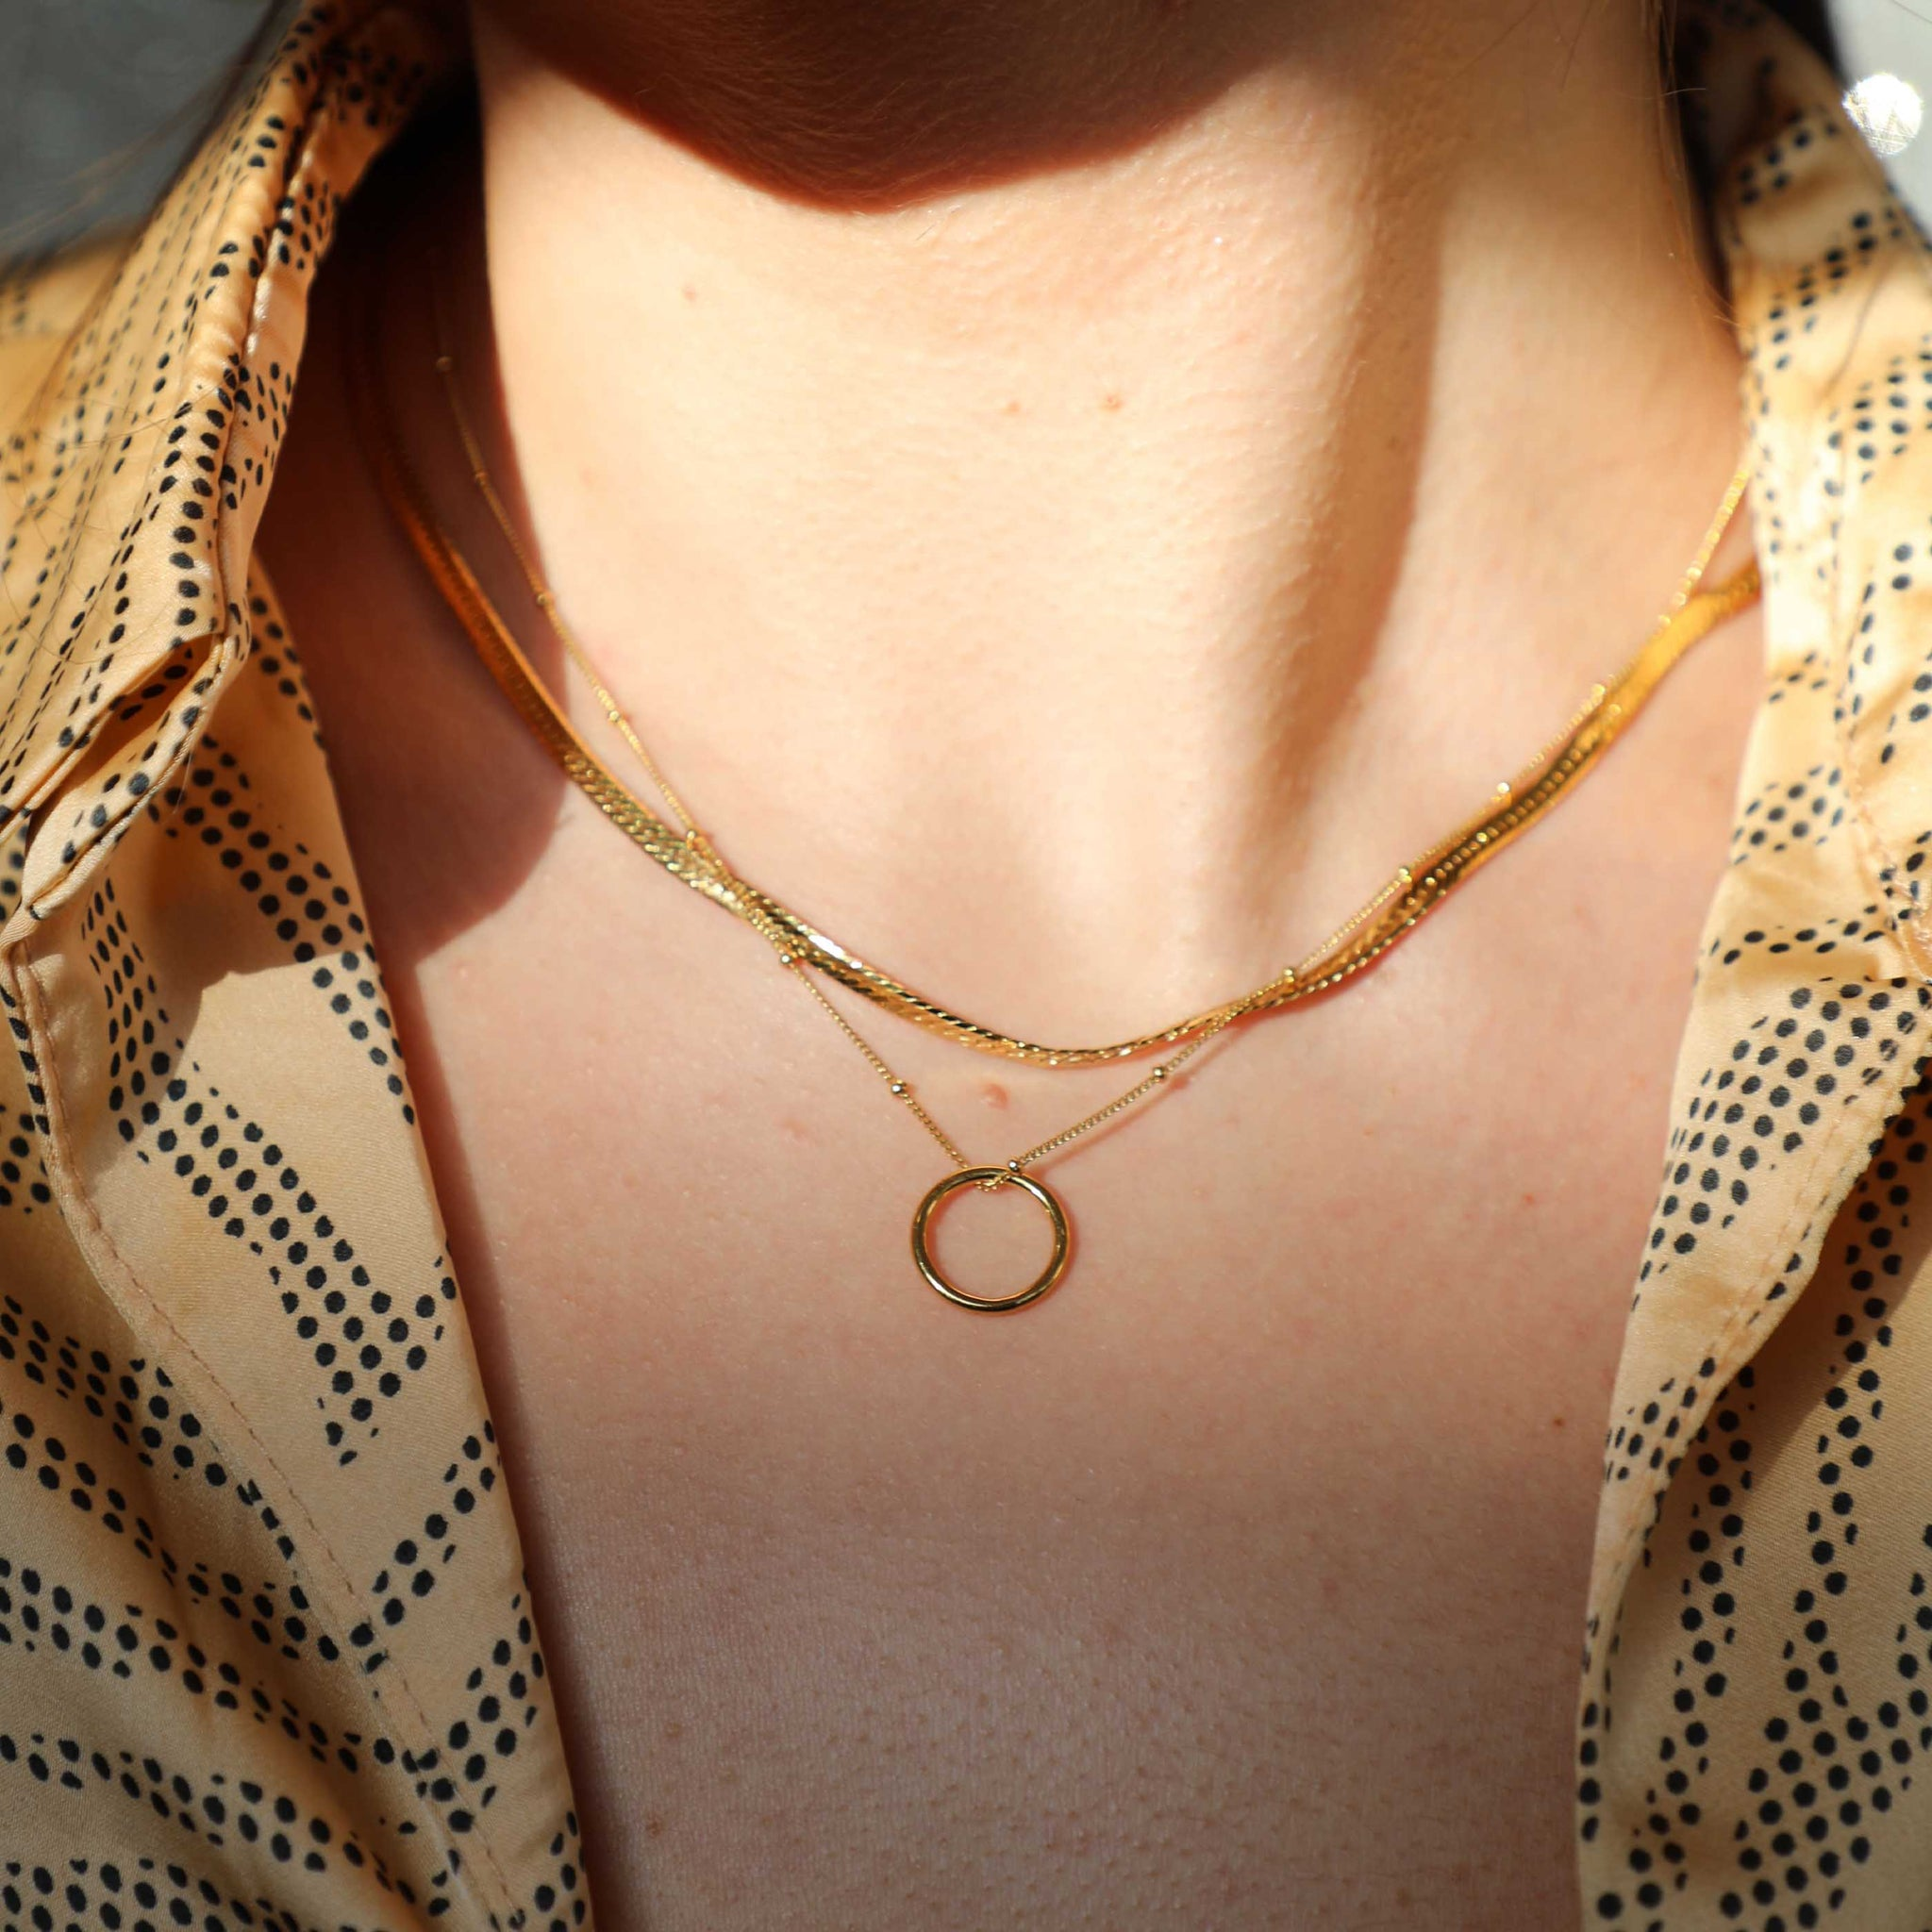 Basic Halo Pendant Necklace in Gold worn with snake chain